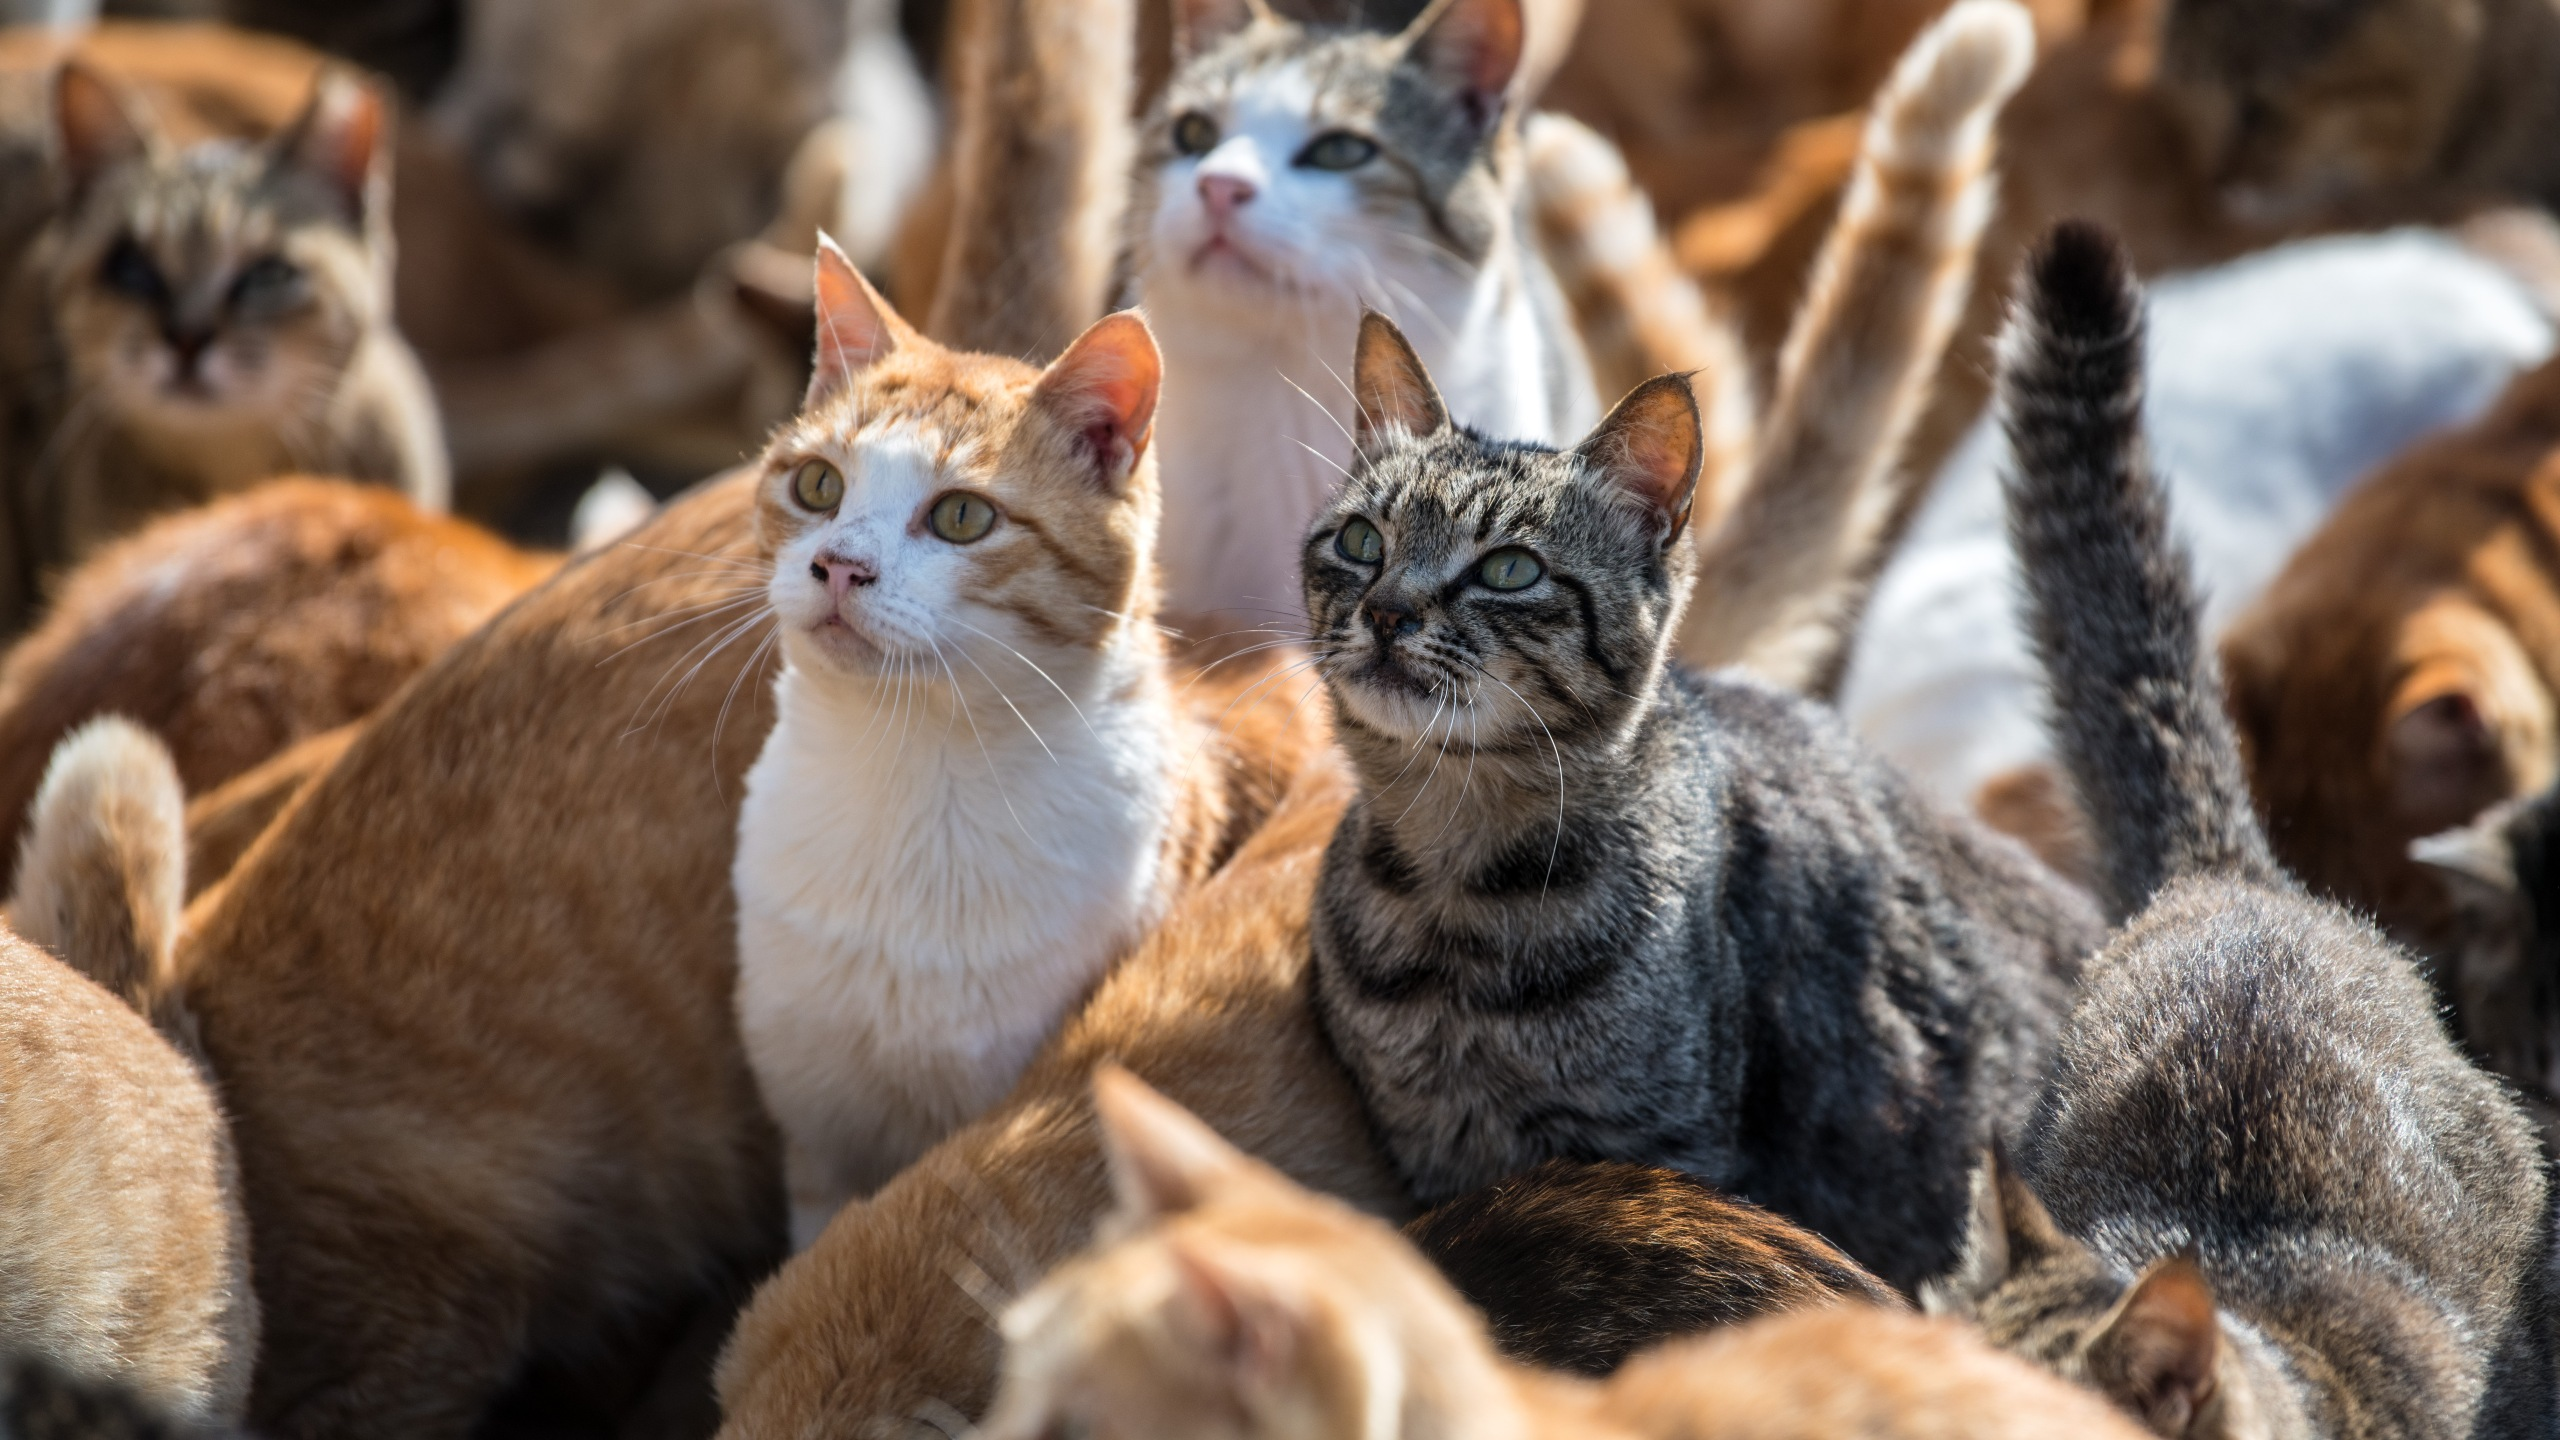 Cats wait for food on Sept. 27, 2018, in Aoshima, Japan. (Credit: Carl Court / Getty Images)